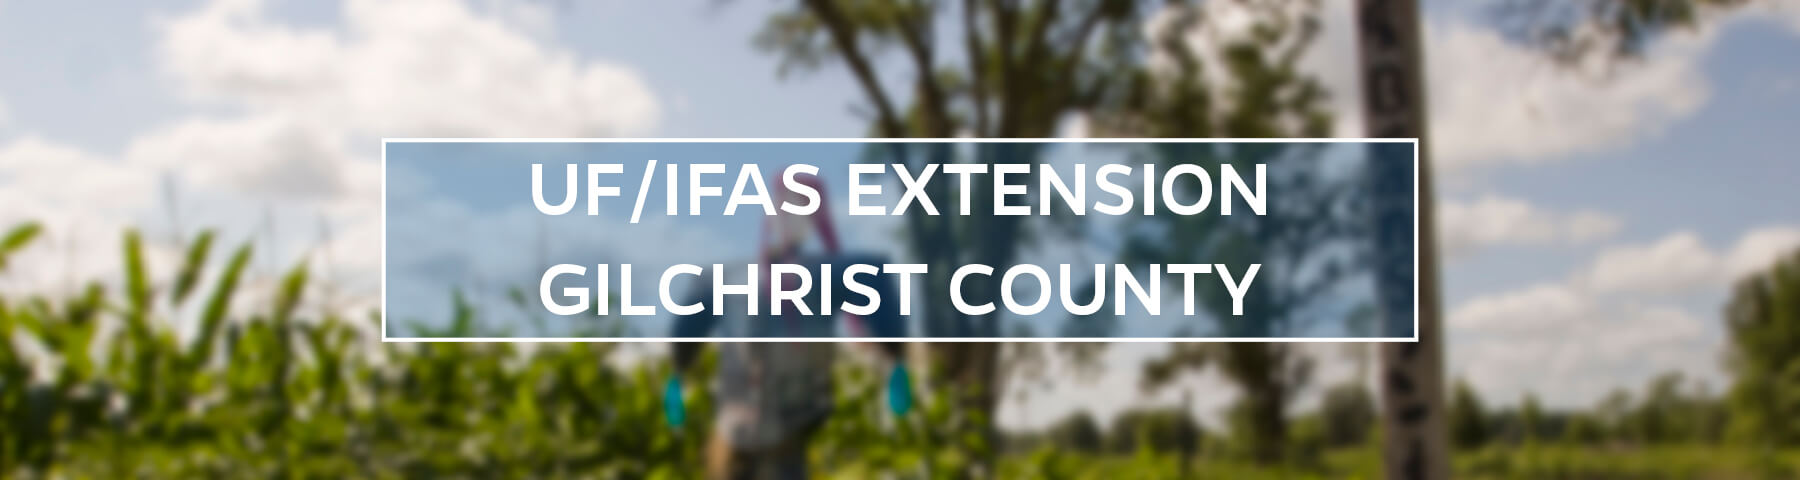 UF/IFAS Extension Gilchrist County